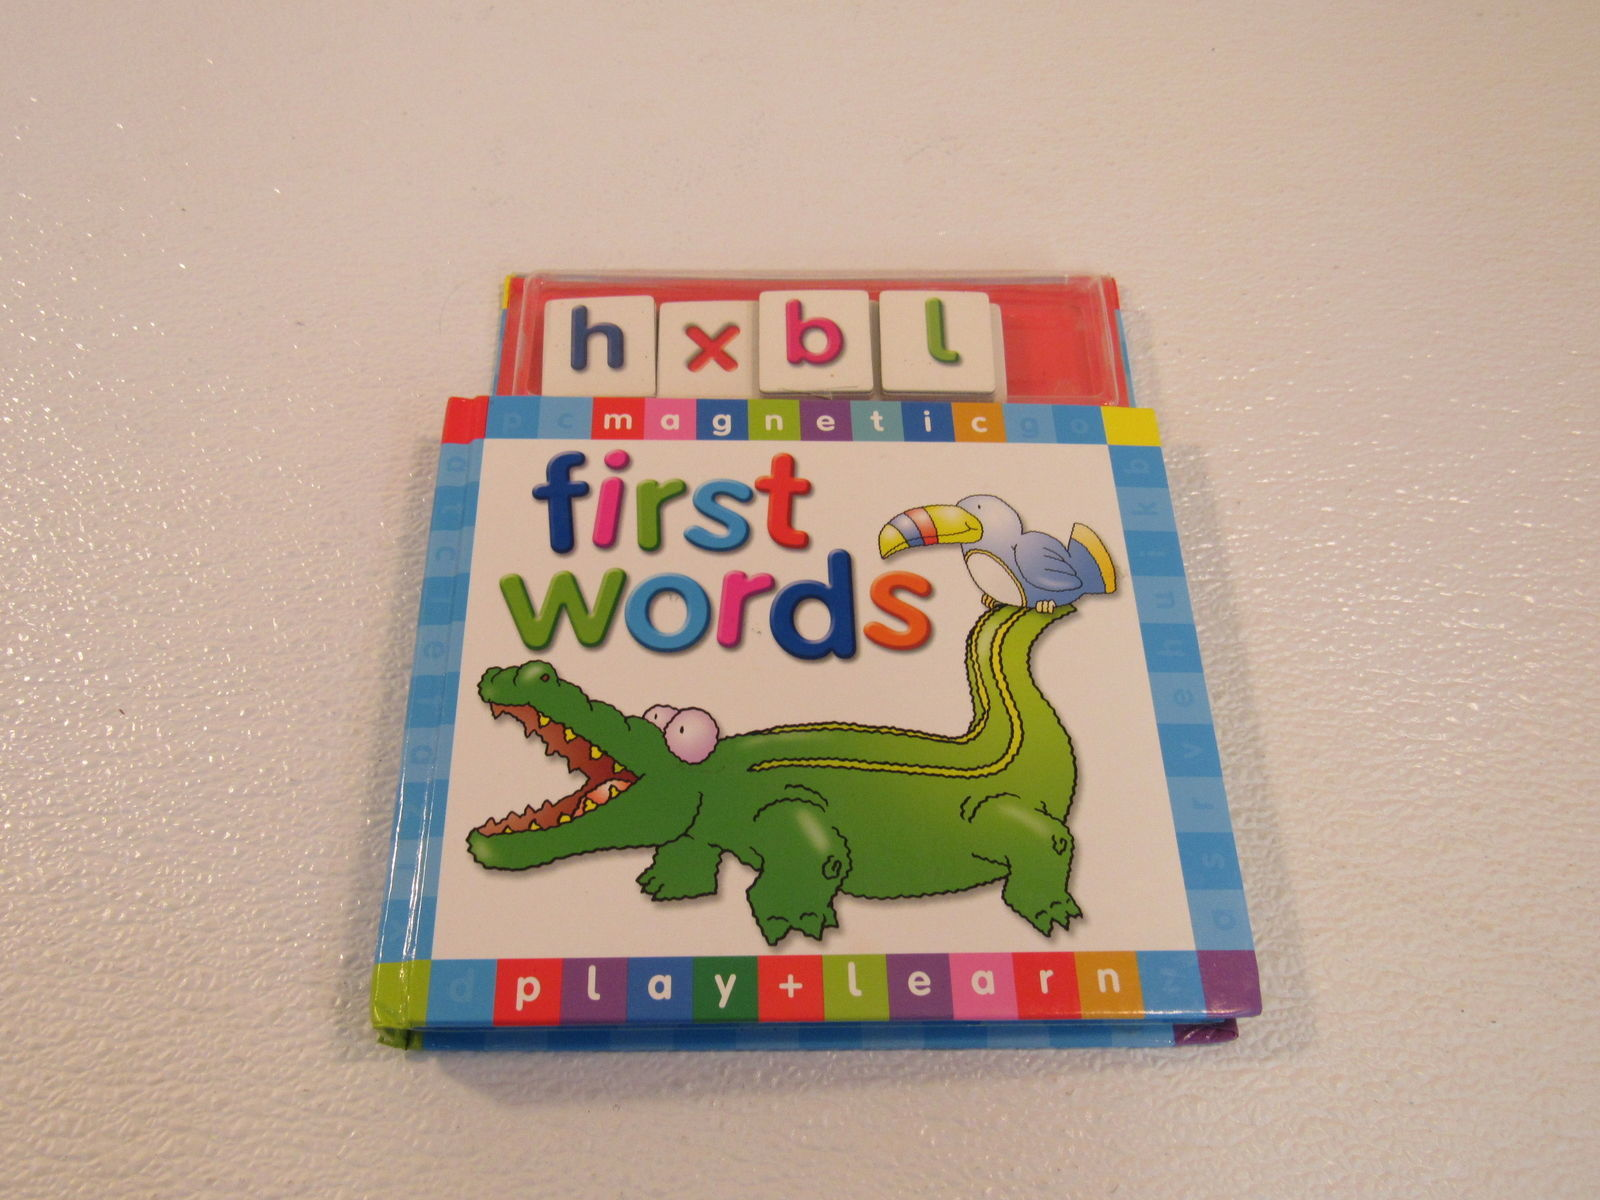 That Publishing First Words Magnetic Play & Learn Board Book